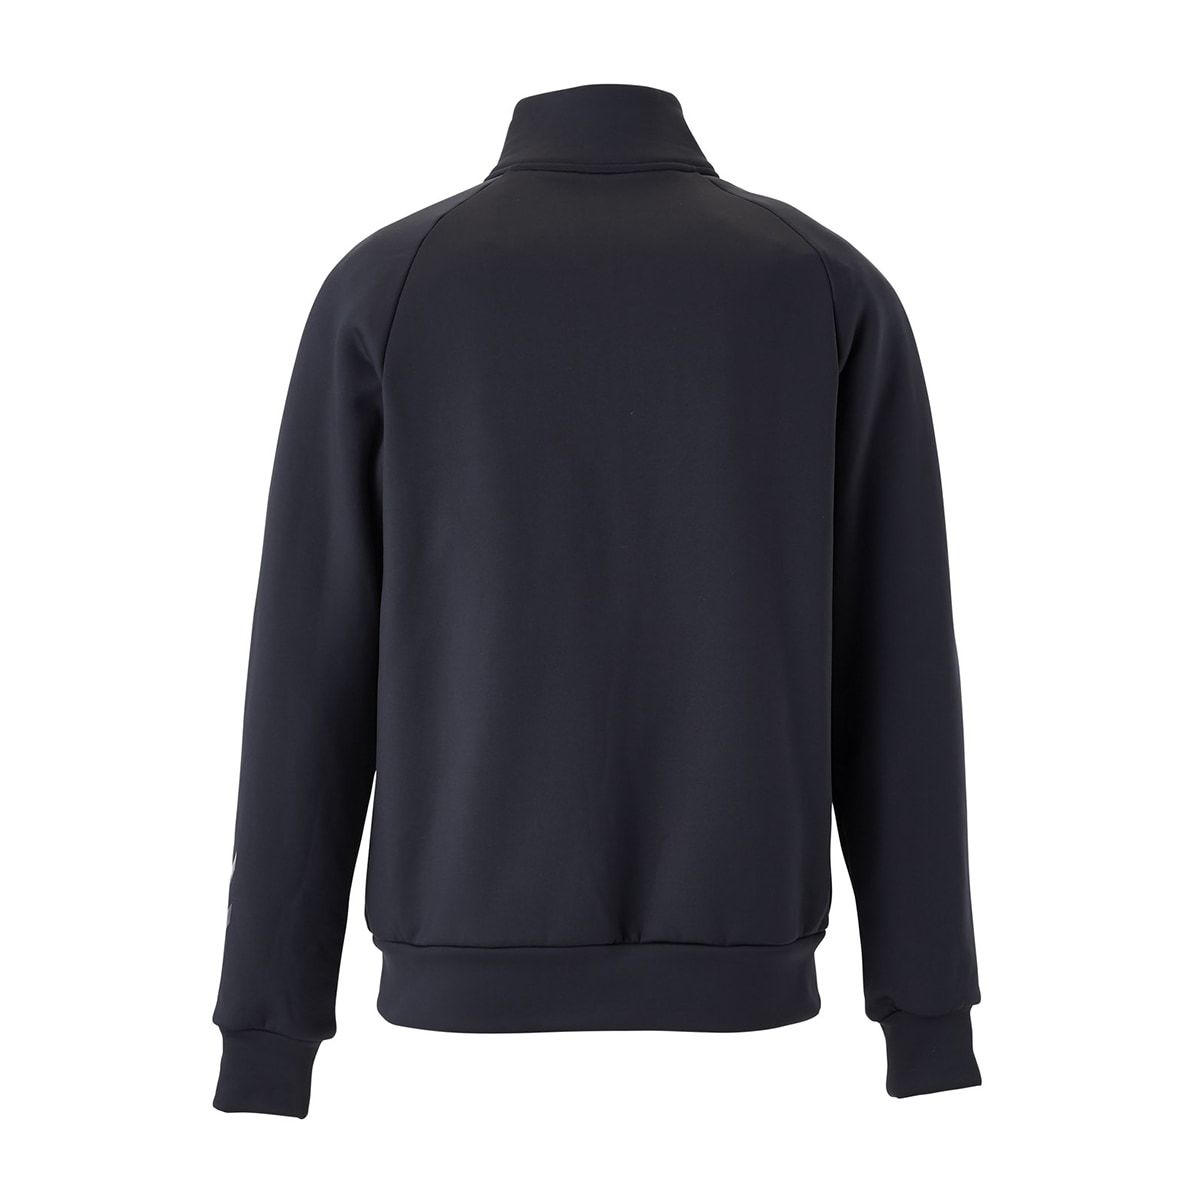 BULKY FLEECE JACKET